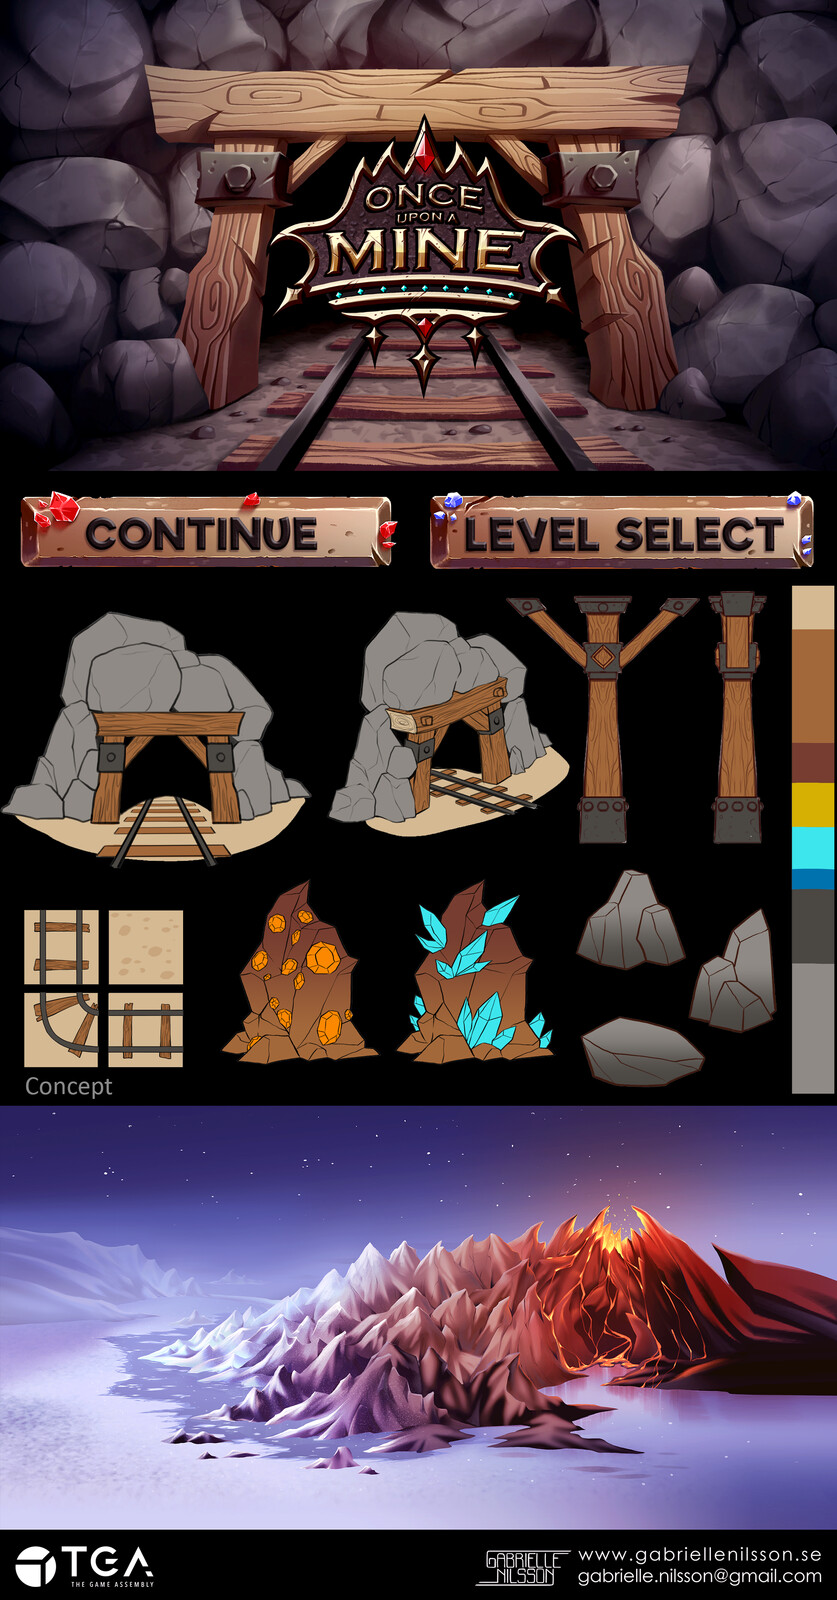 Some of the assets I worked on for our second game project. A puzzle game about lazy dwarves in a mine.